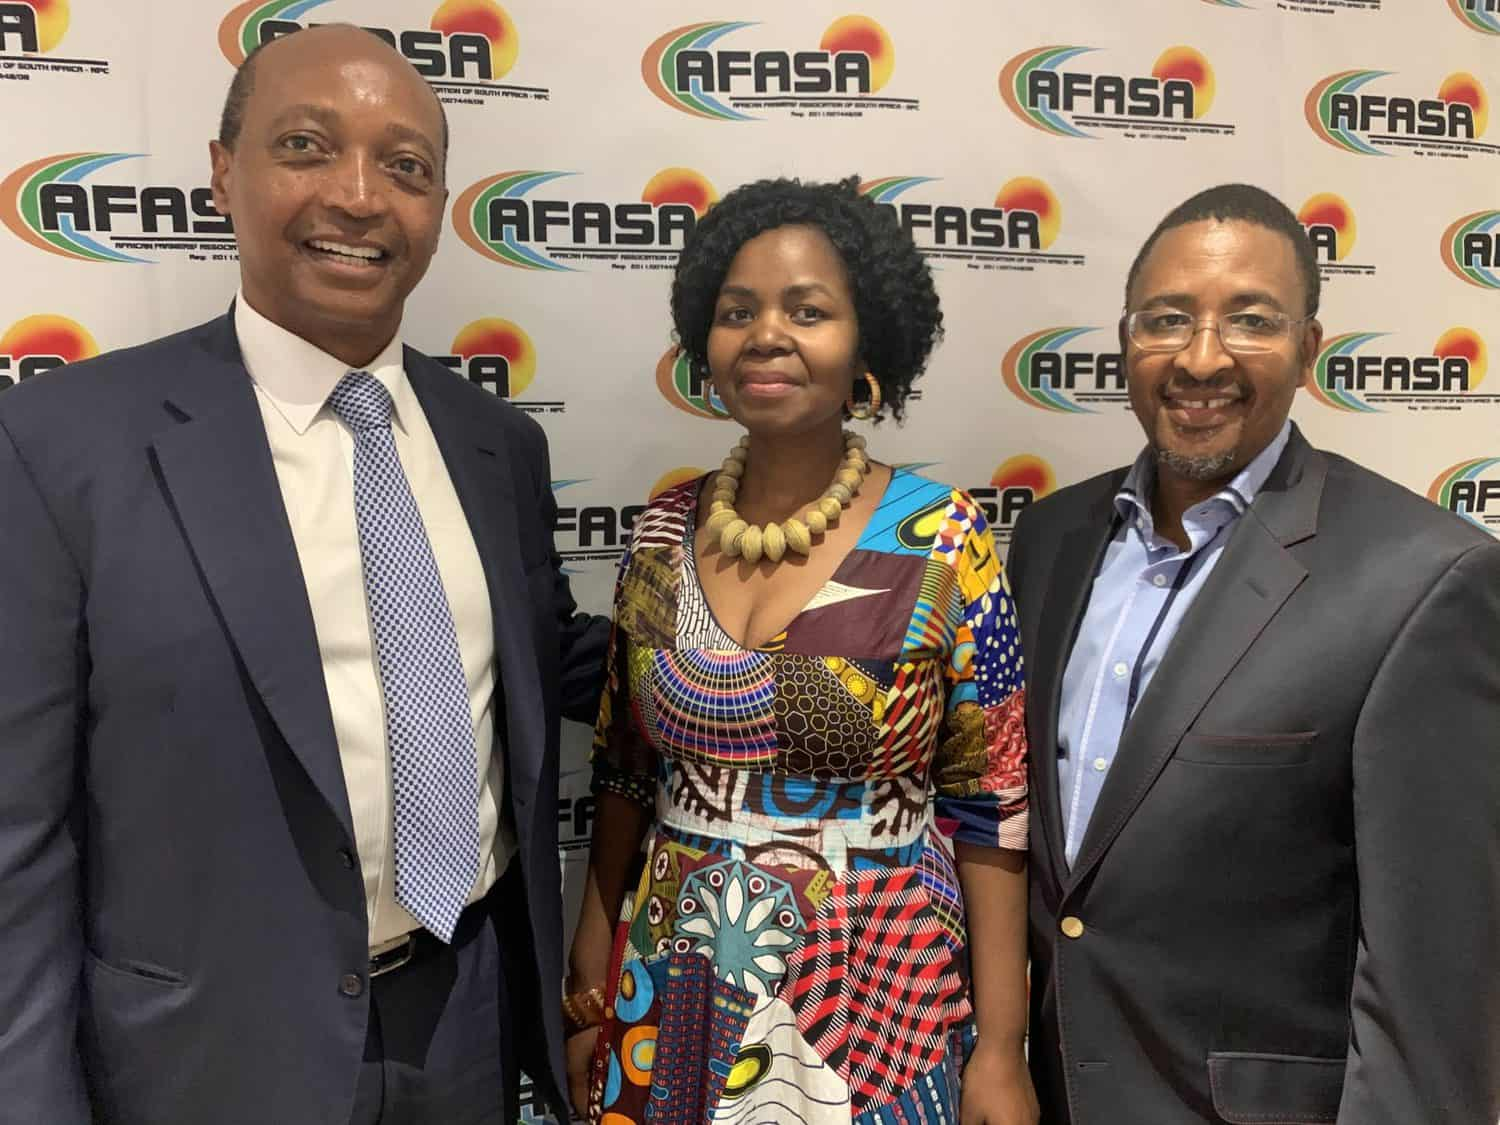 Moments before Dr Patrice Motsepe, the founder and executive chairman of African Rainbow Minerals, announced a multi-billion rand fund for black farmers. He is pictured with the late AFASA president Dr Vuyo Mahlati and chairperson Neo Masithela. Photo: Food For Mzansi